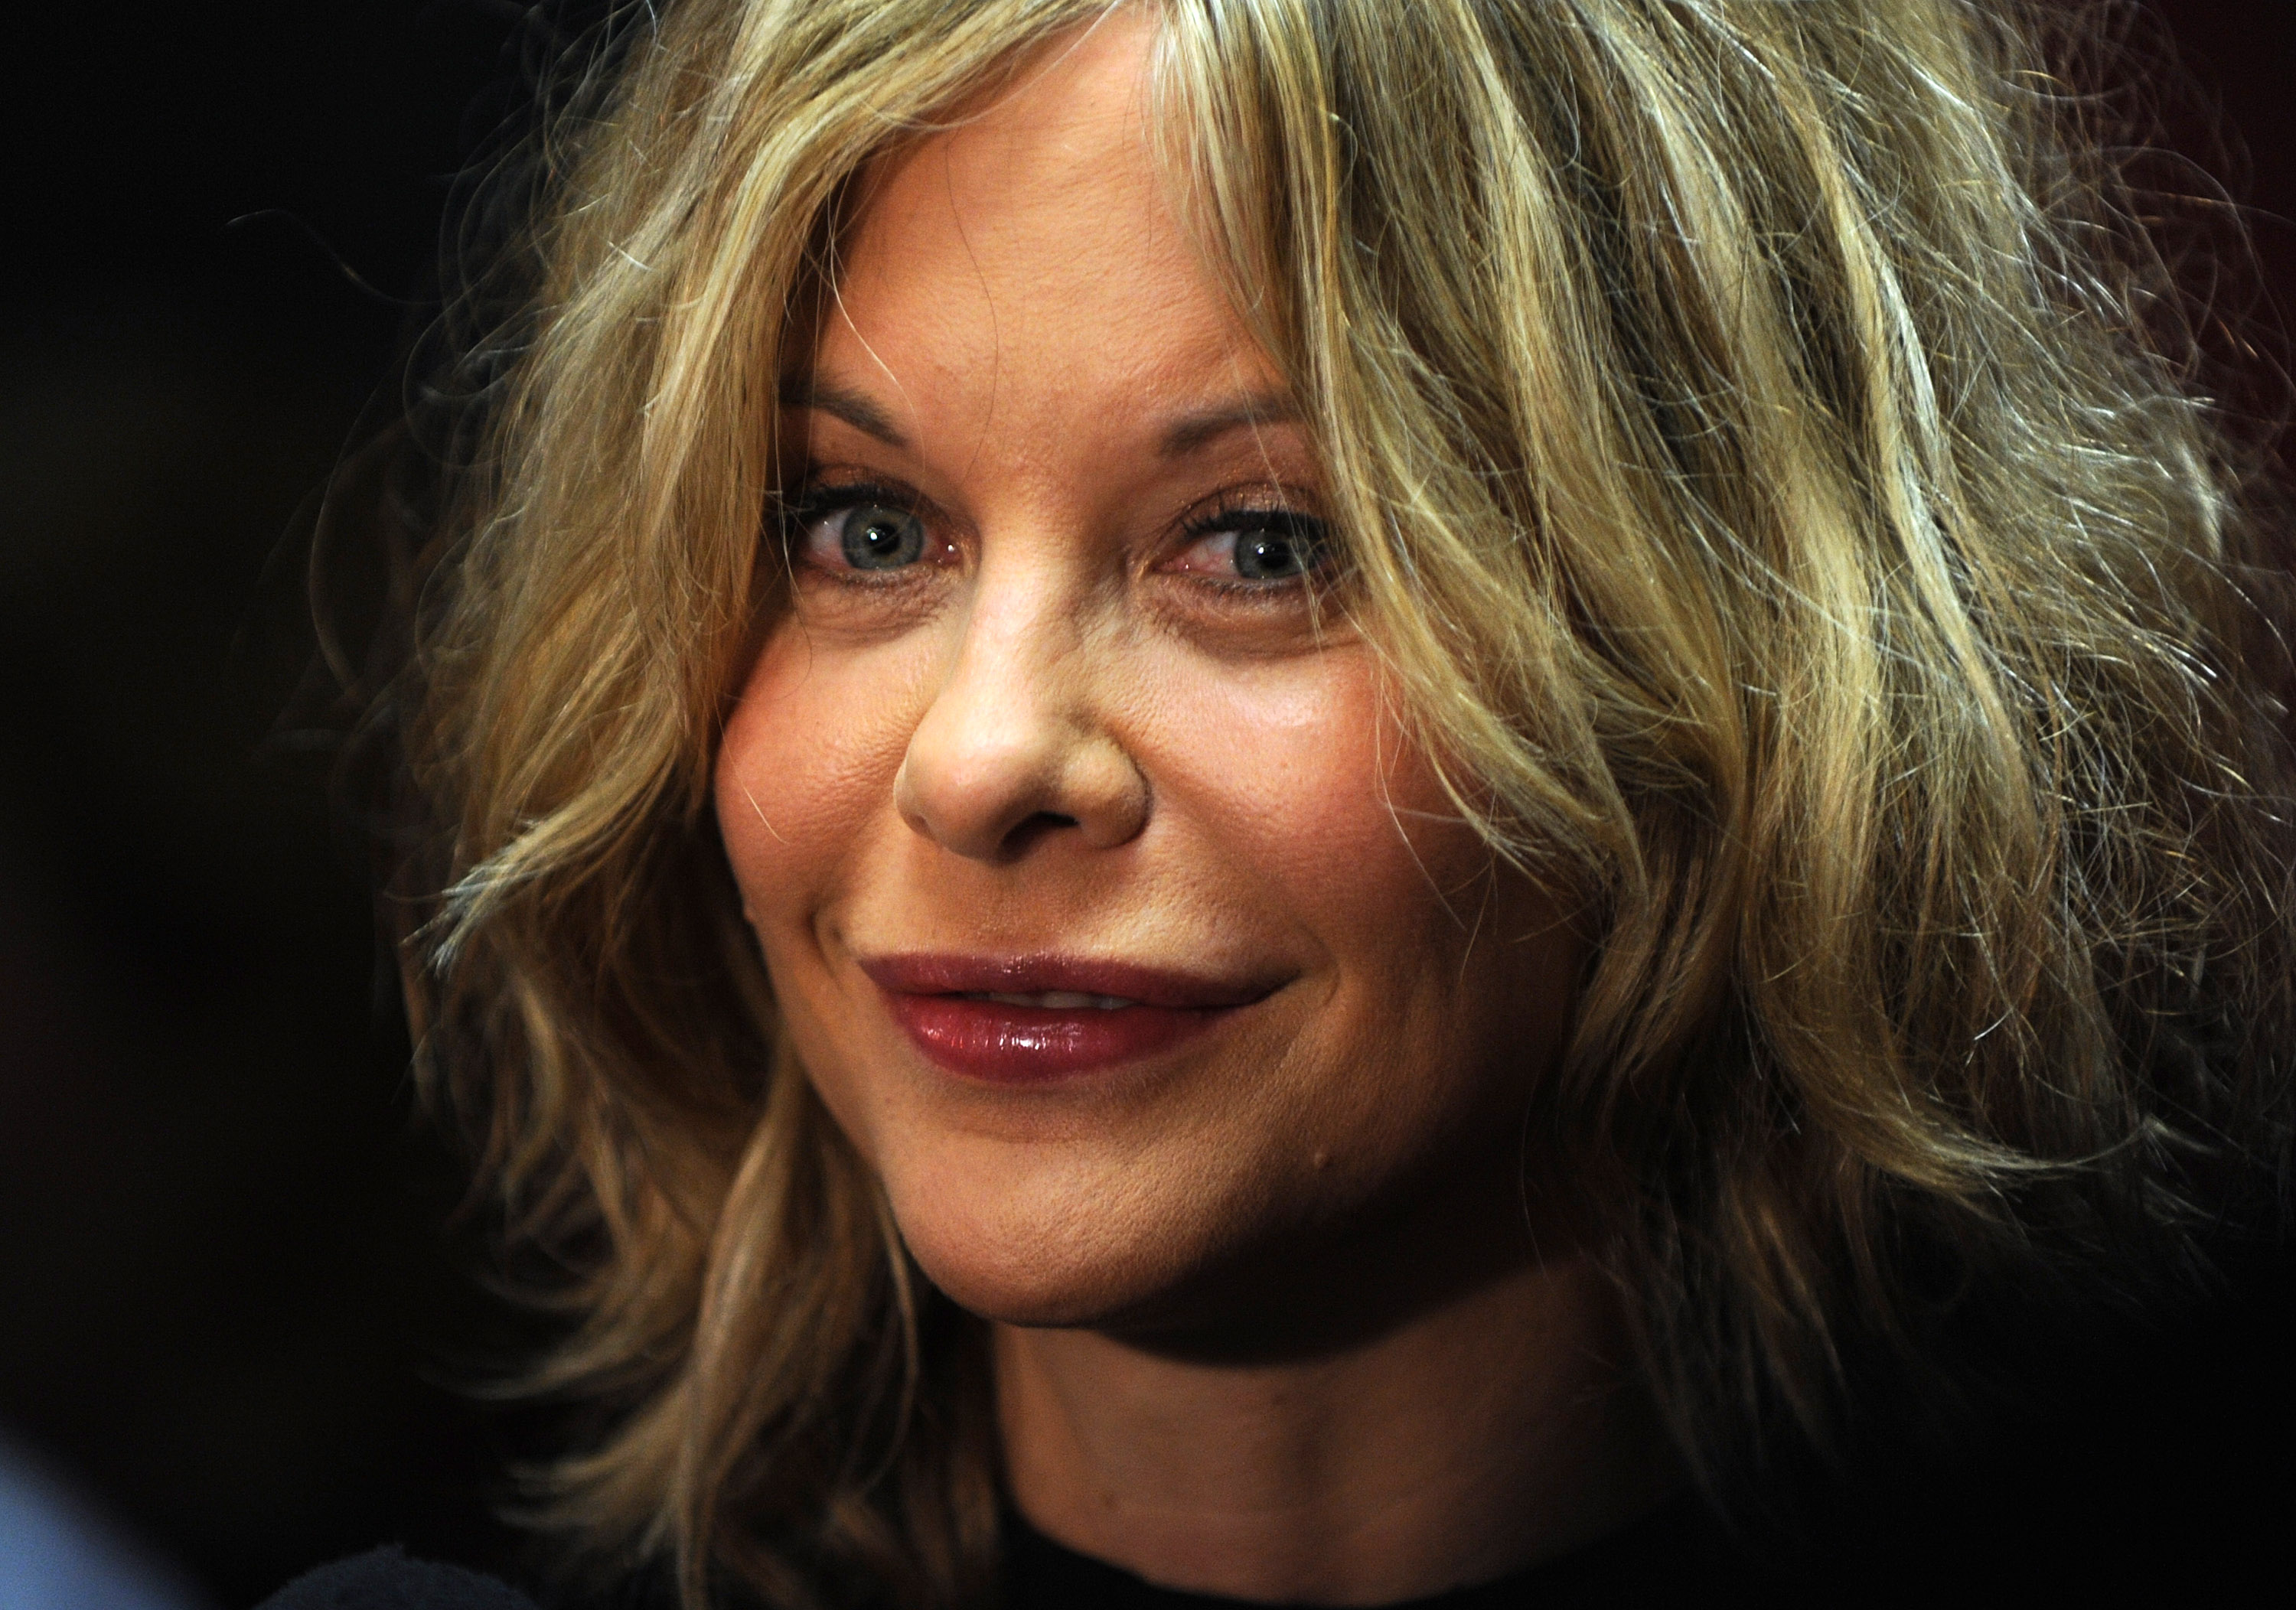 Forum on this topic: Elizabeth Amsden, meg-ryan/